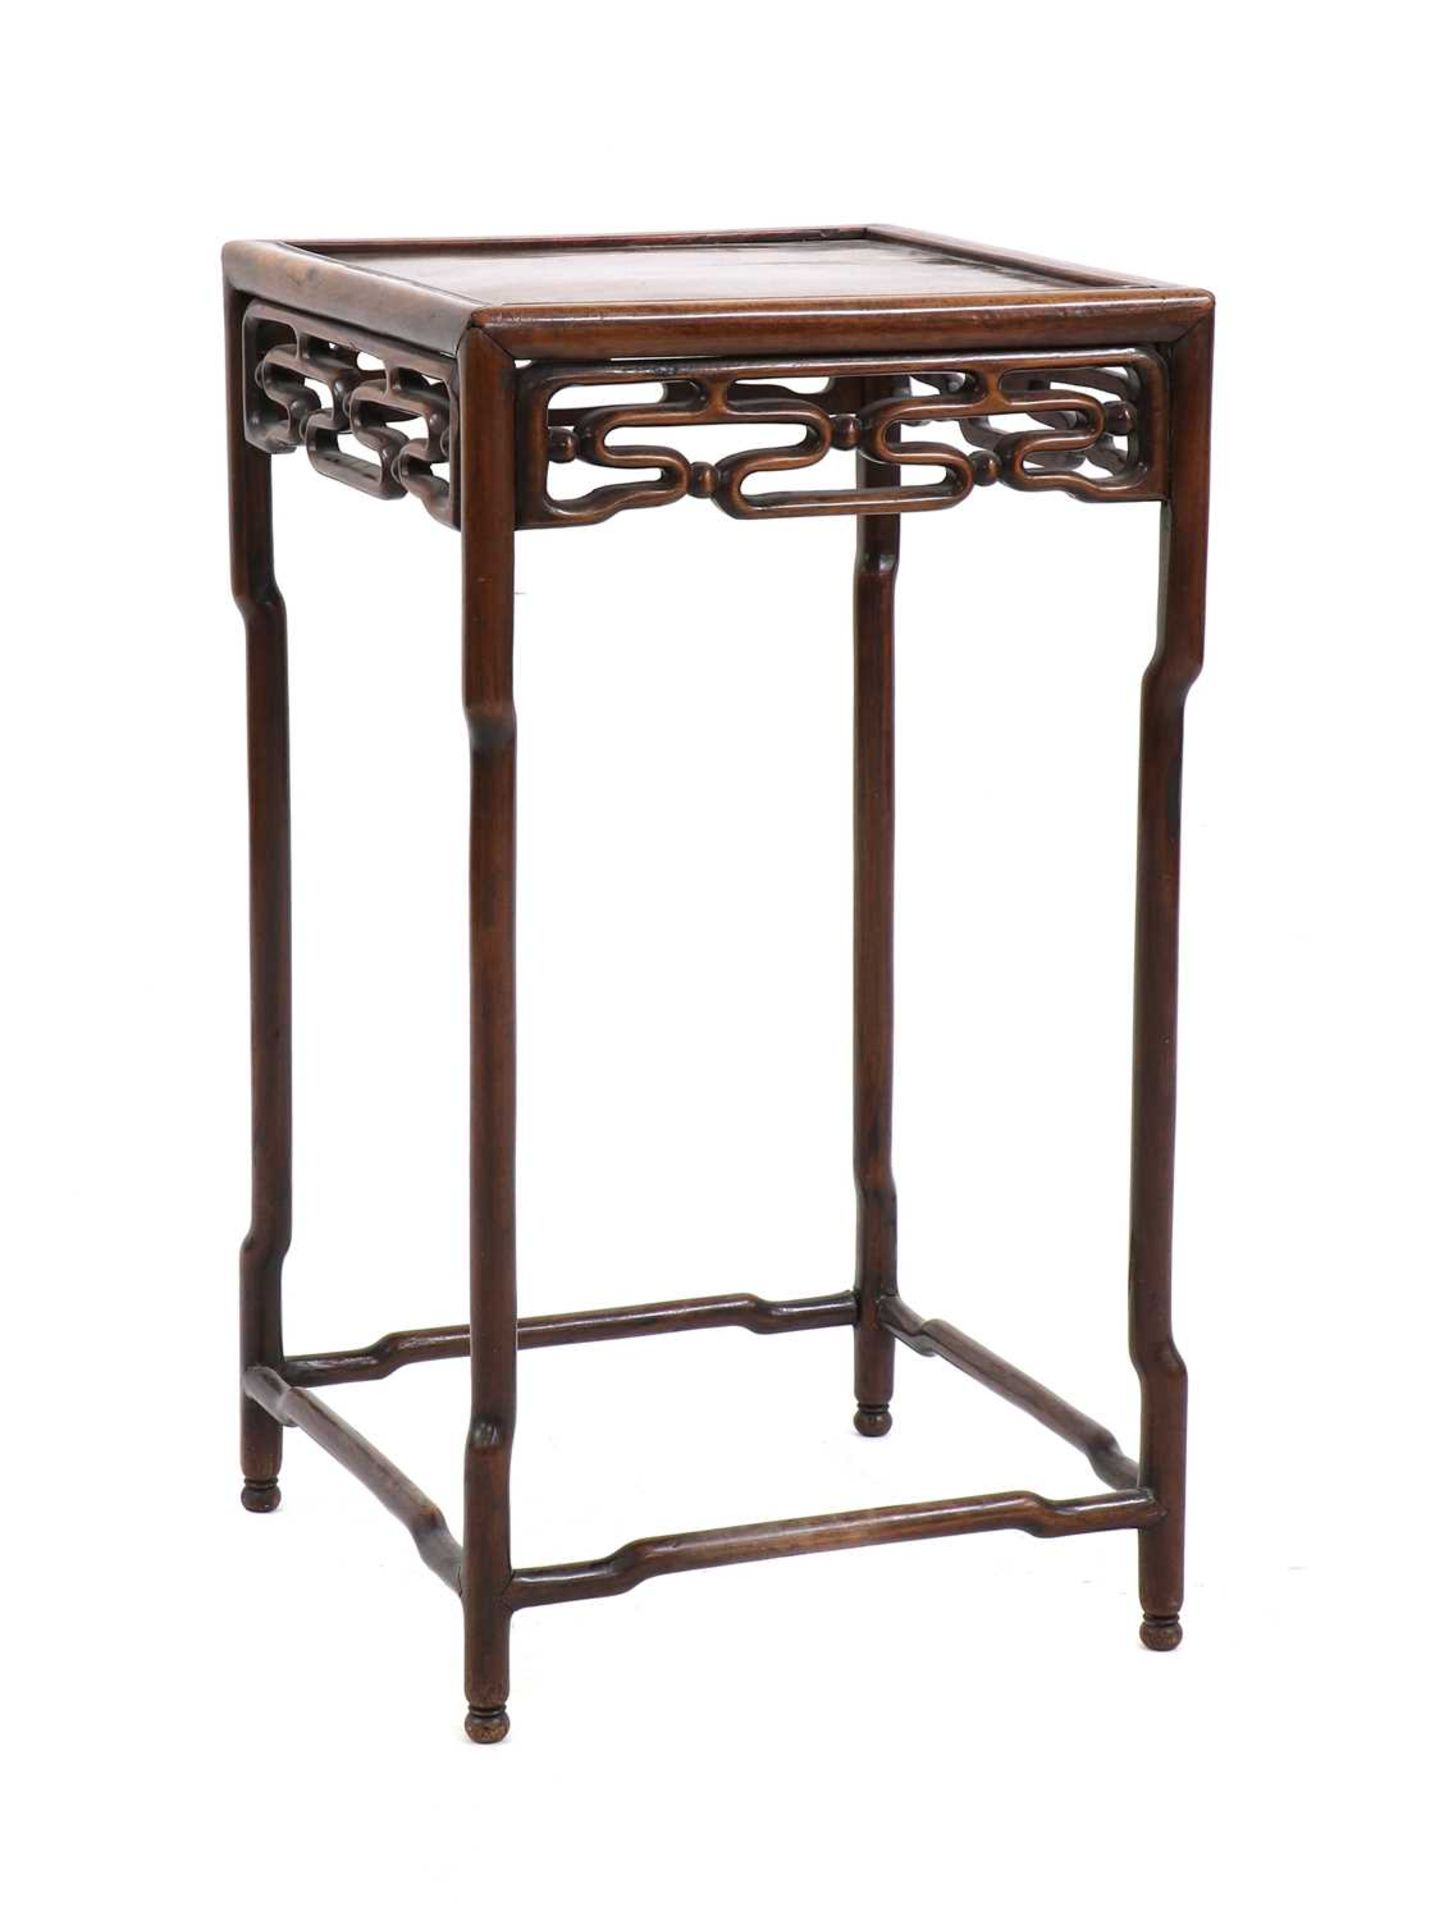 A Chinese hardwood side table, - Image 2 of 5